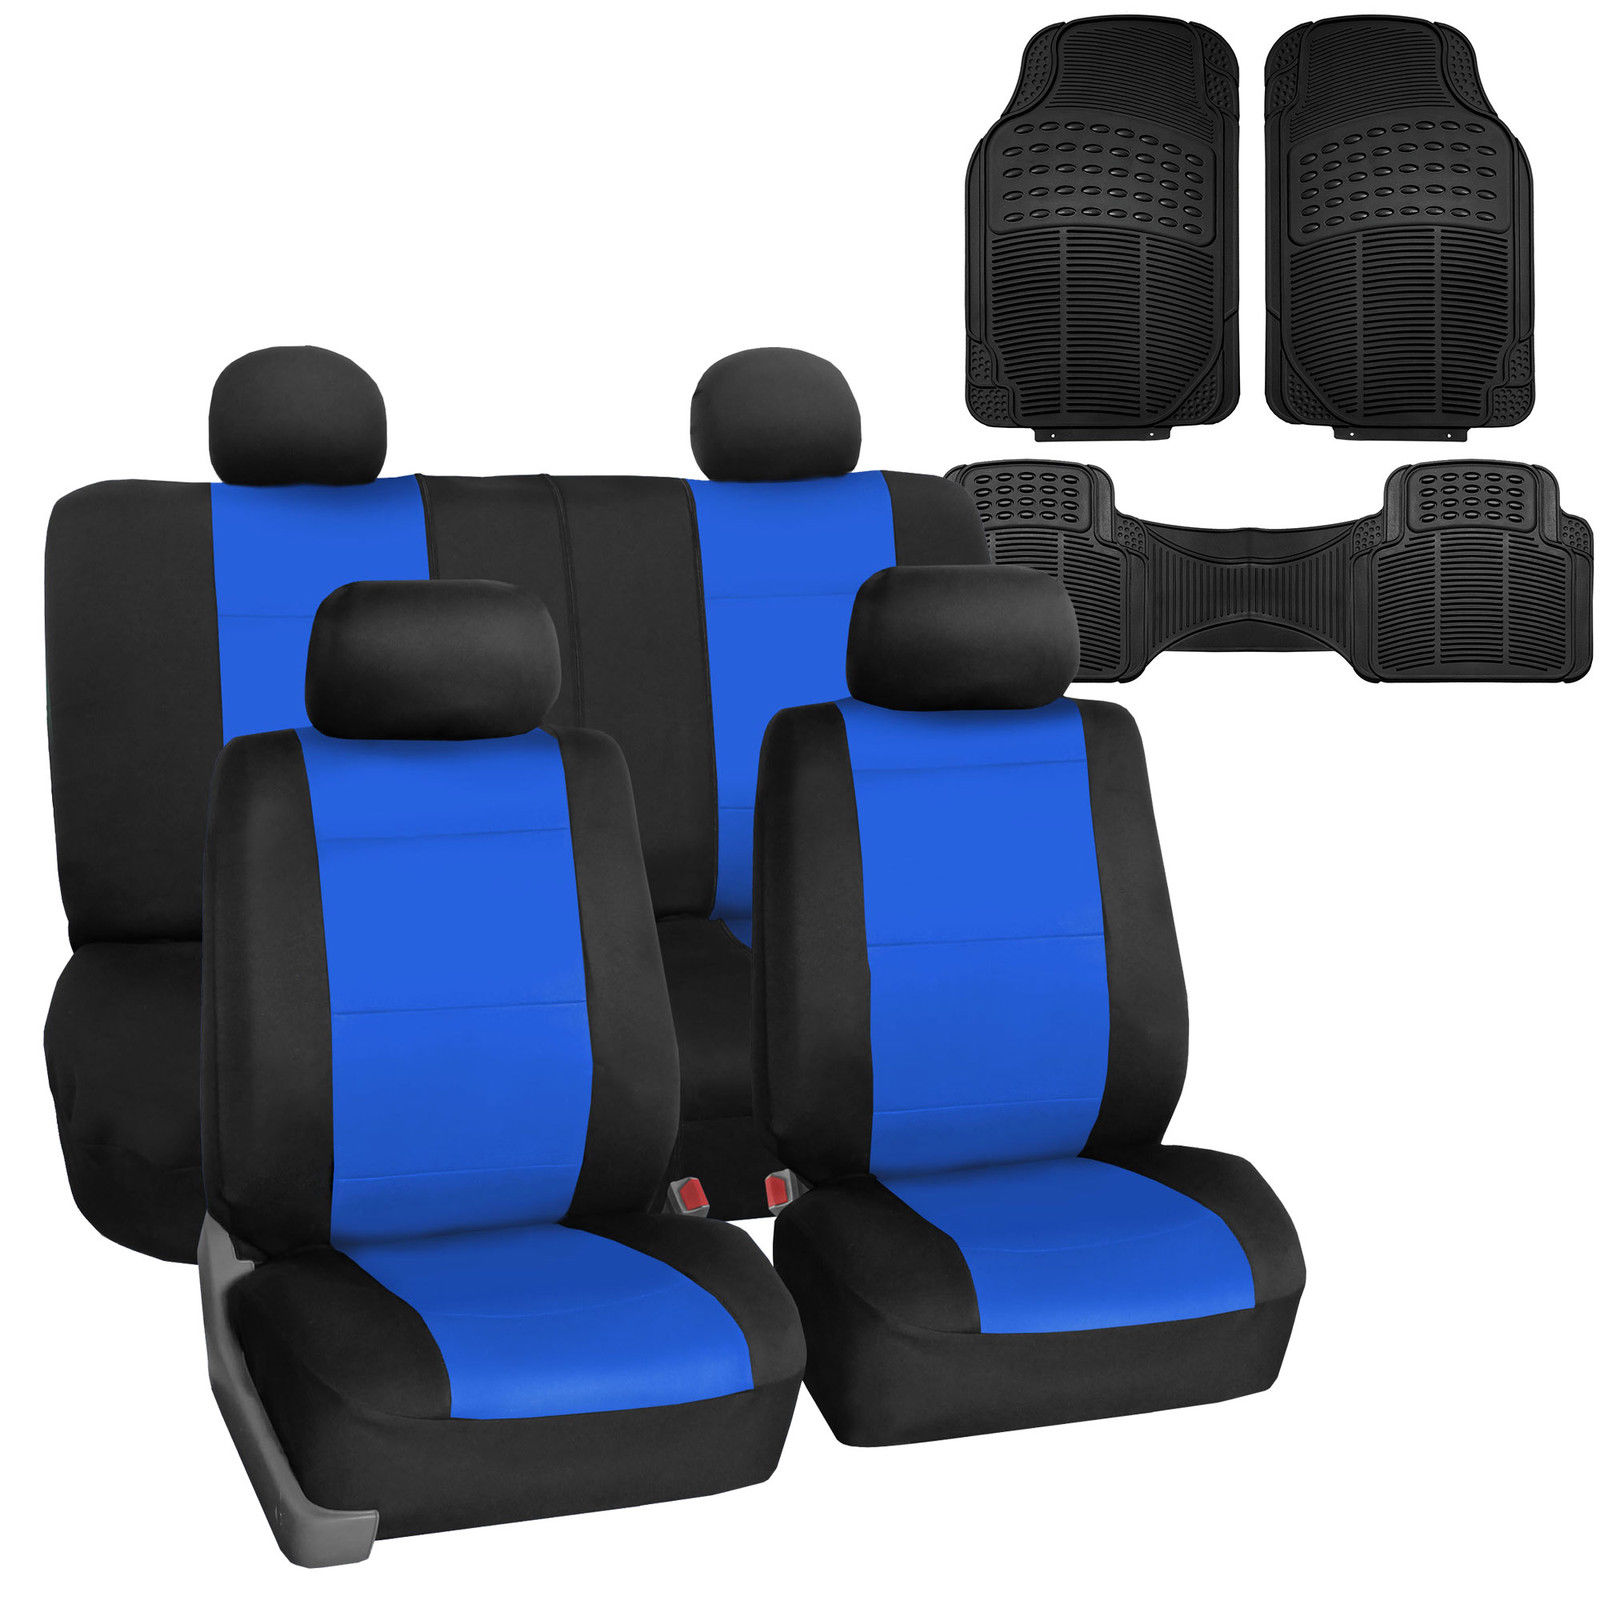 Your Car Deserves Nothing but Neoprene Seat Covers